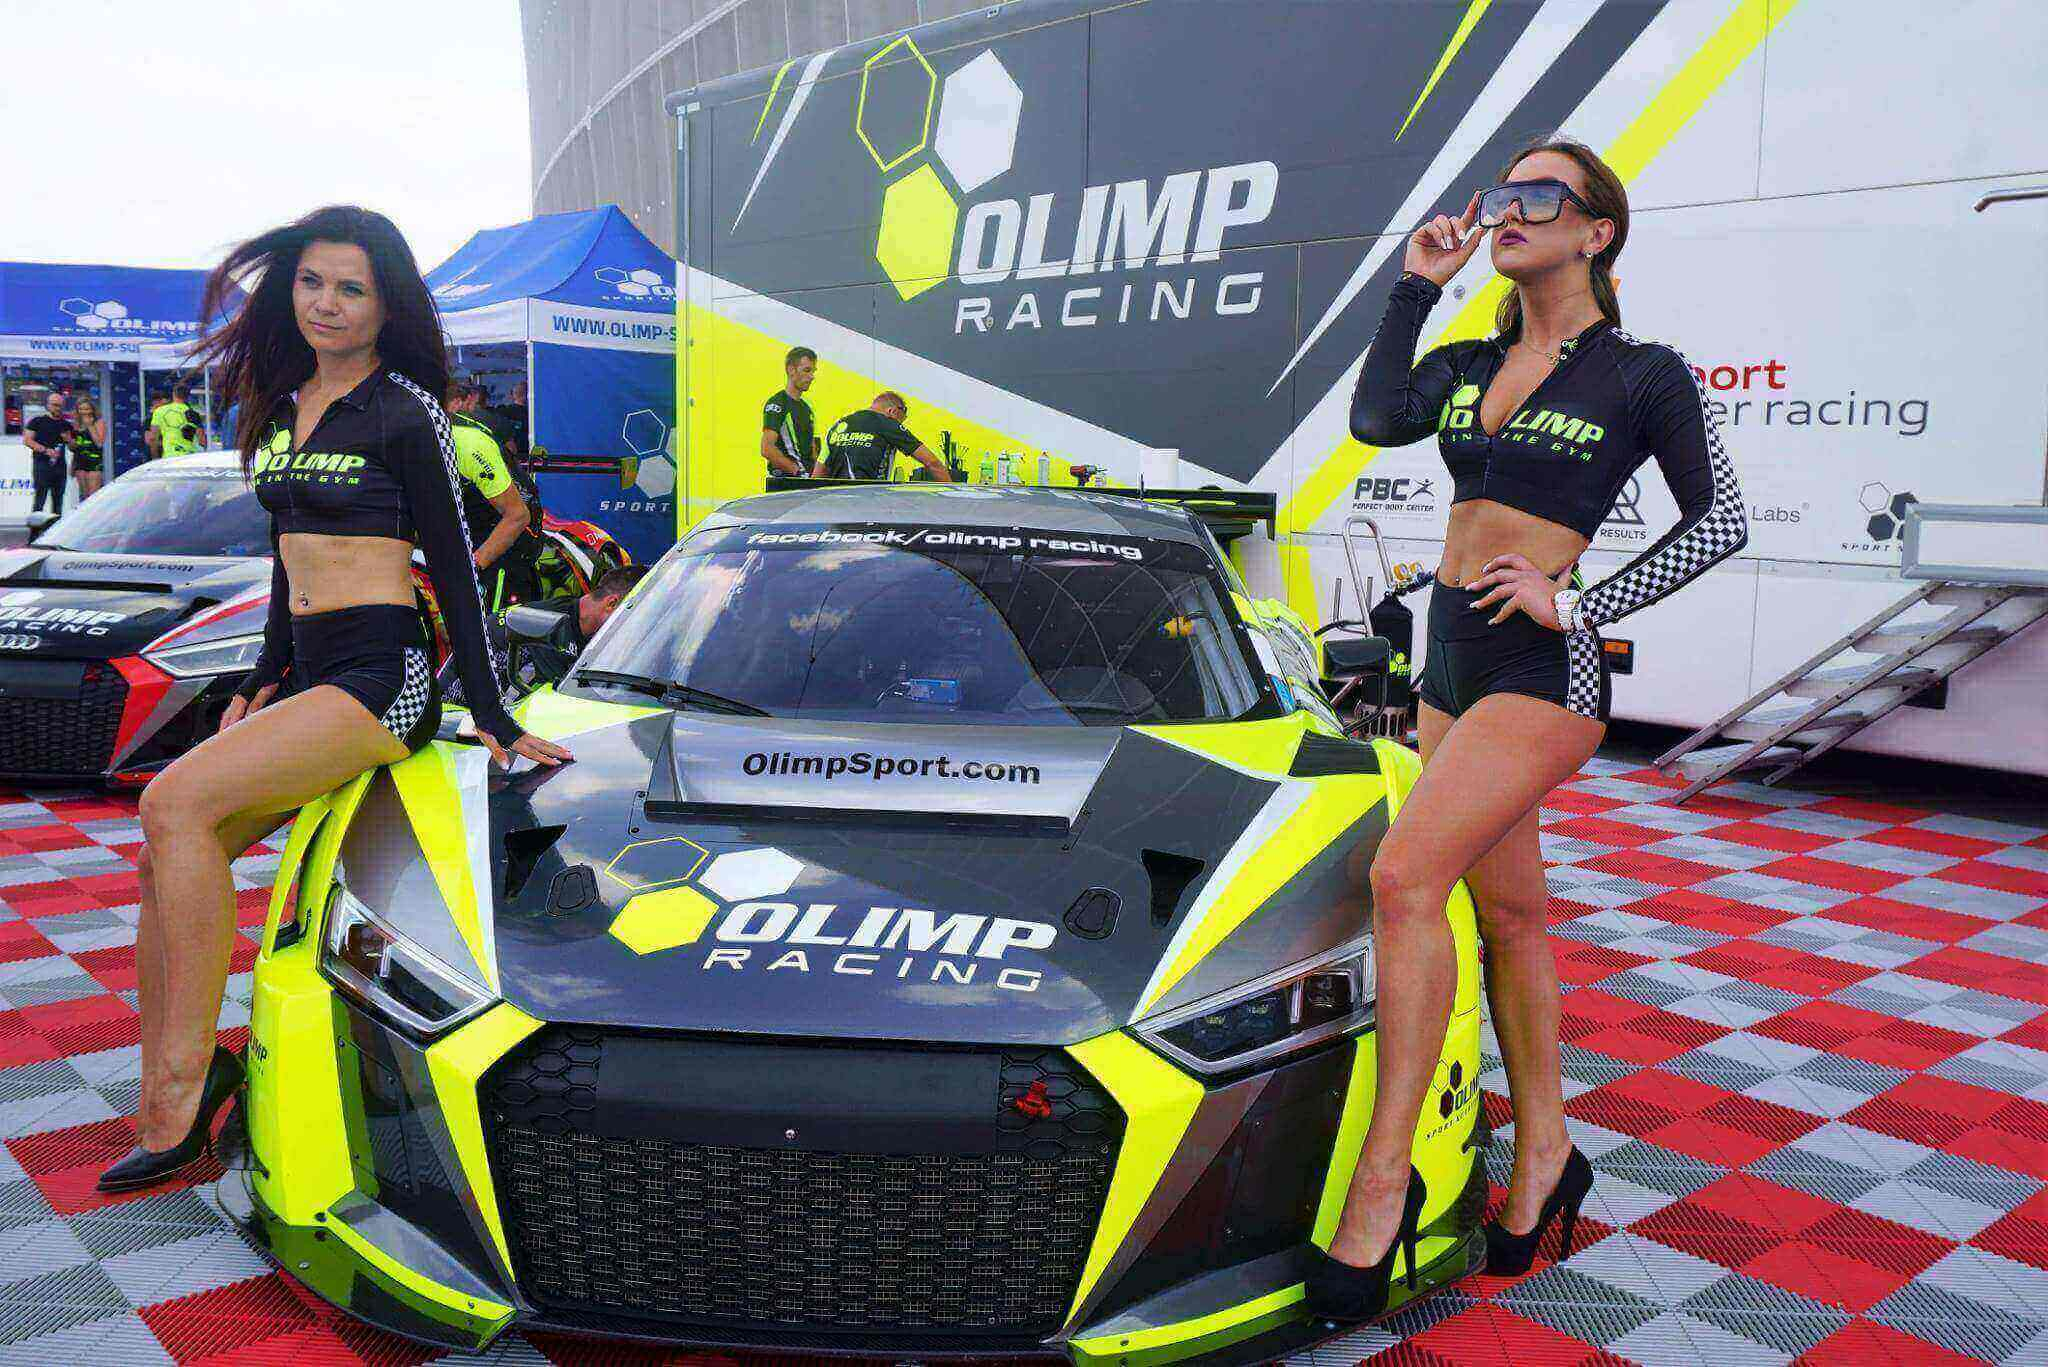 Olimp and fast cars?